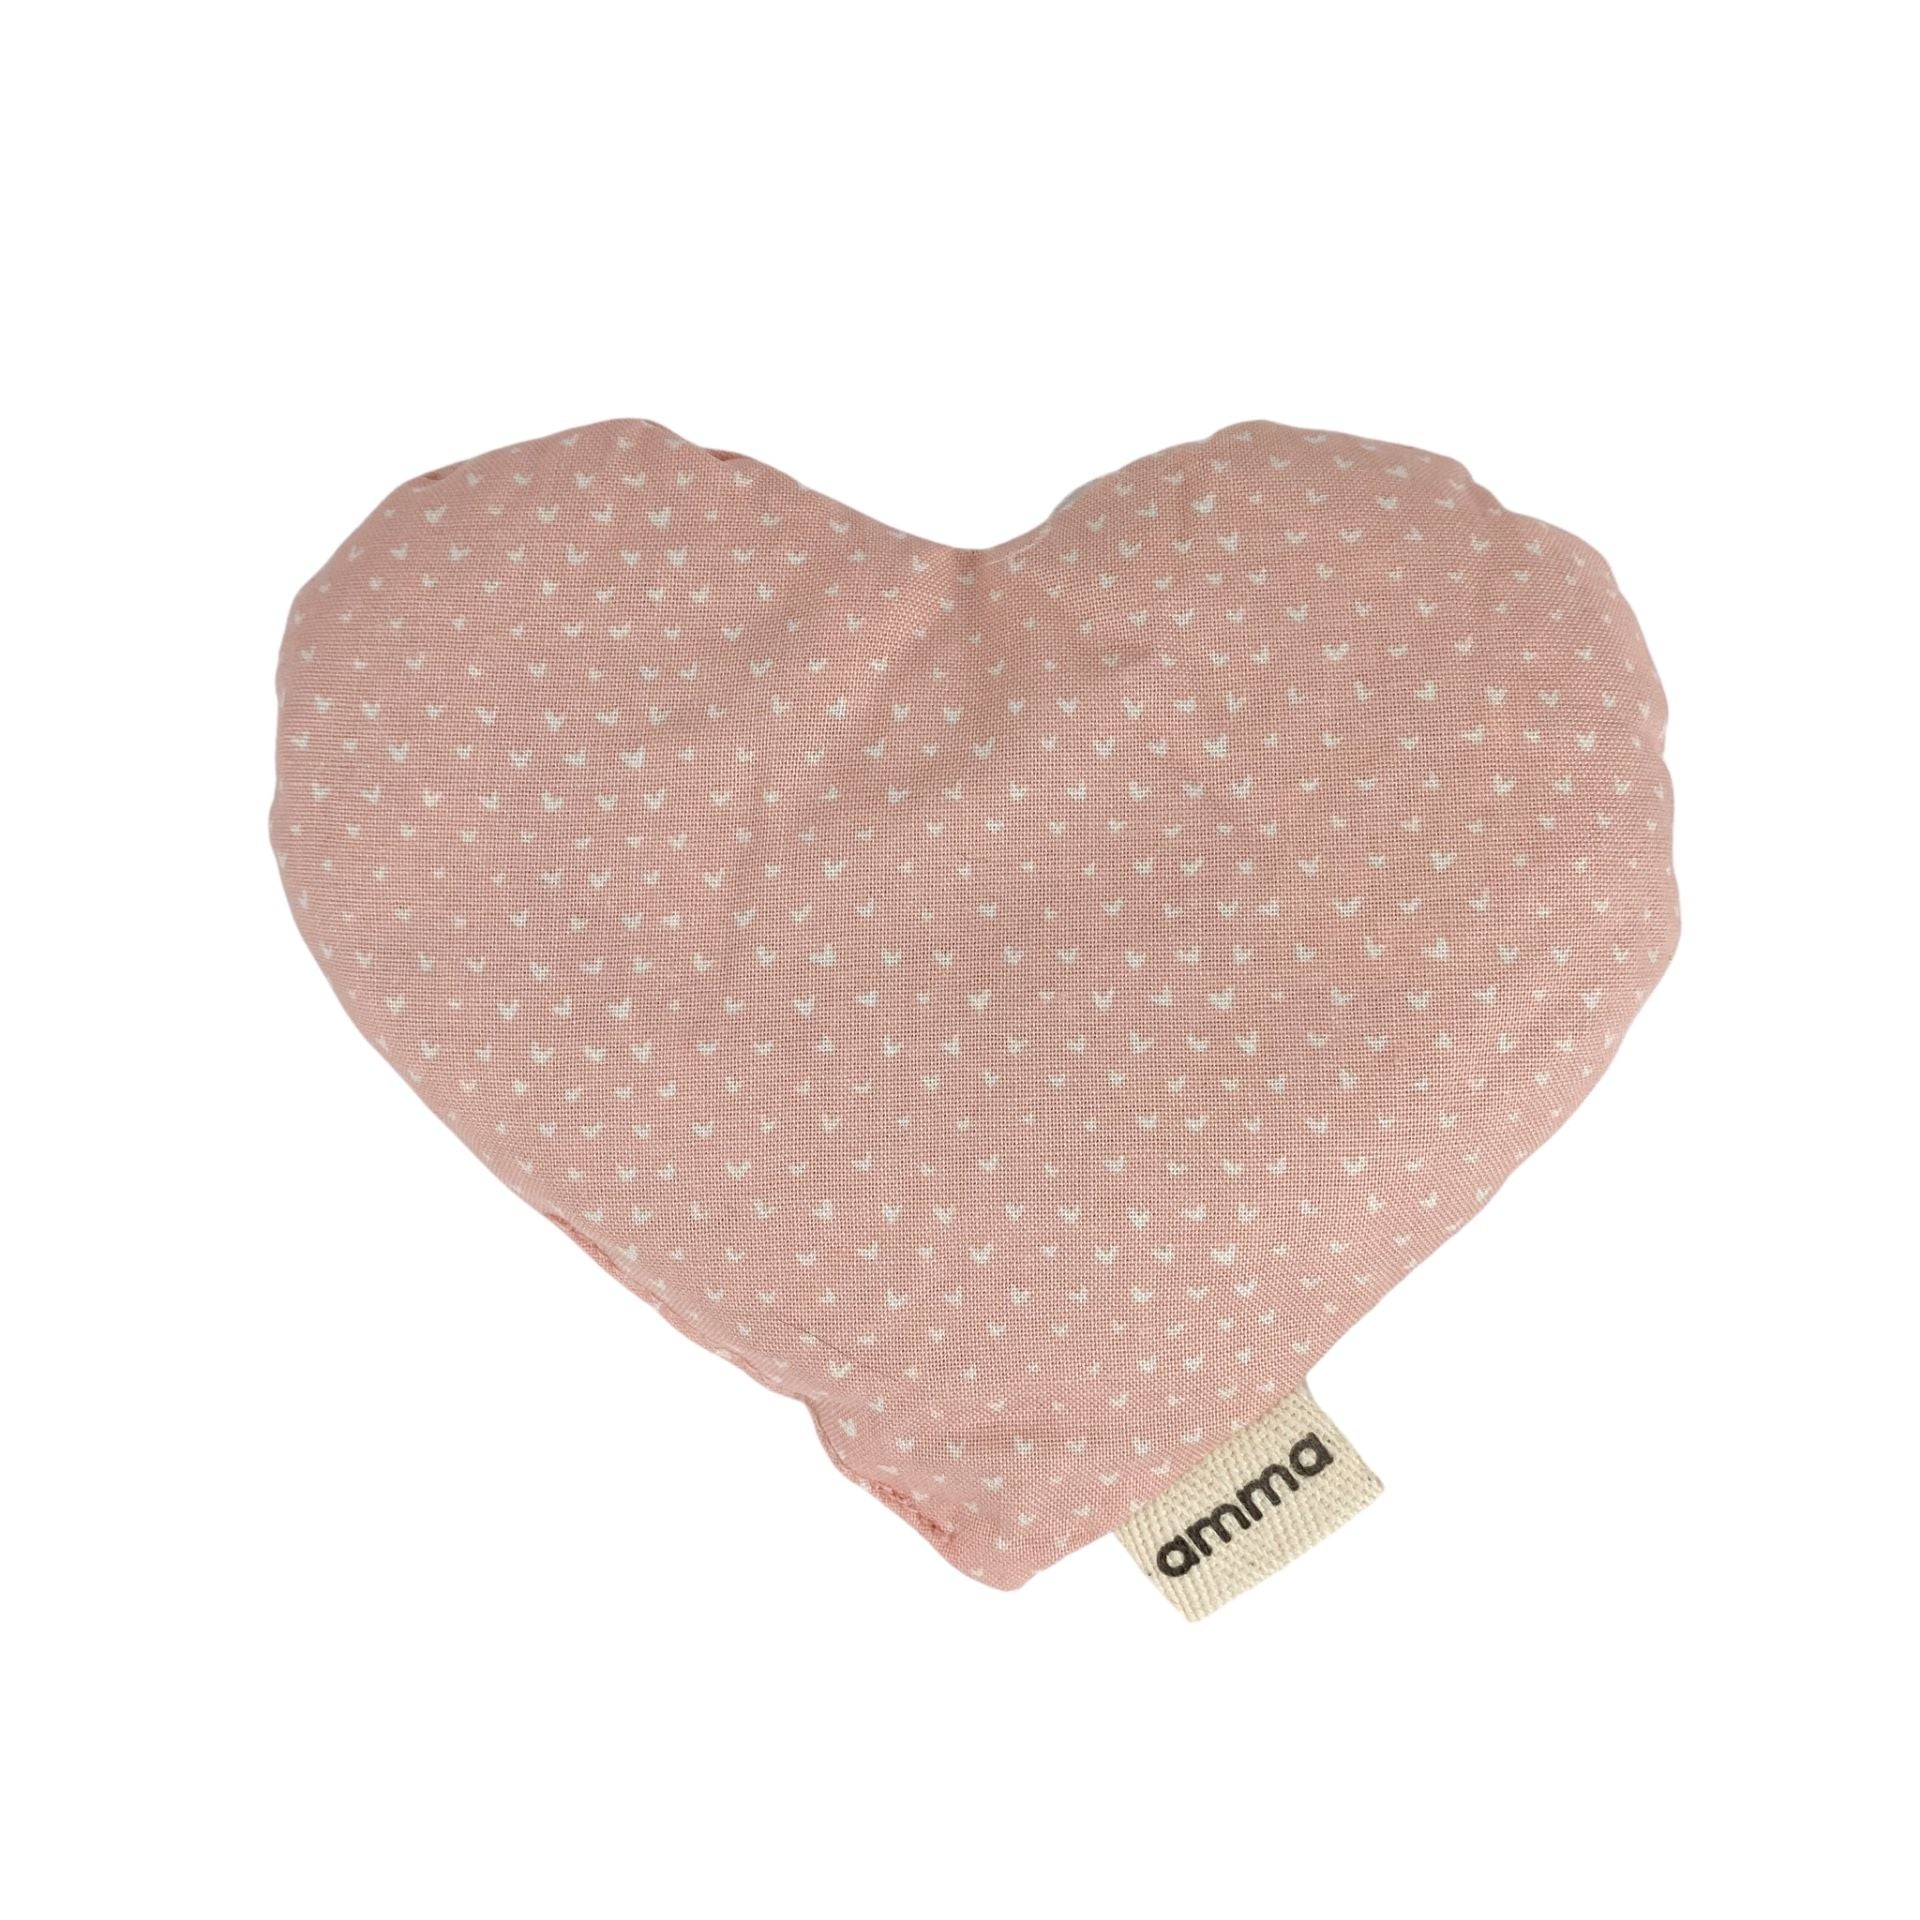 Heart Shaped Pink with Hearts Compress Used Hot or Cold